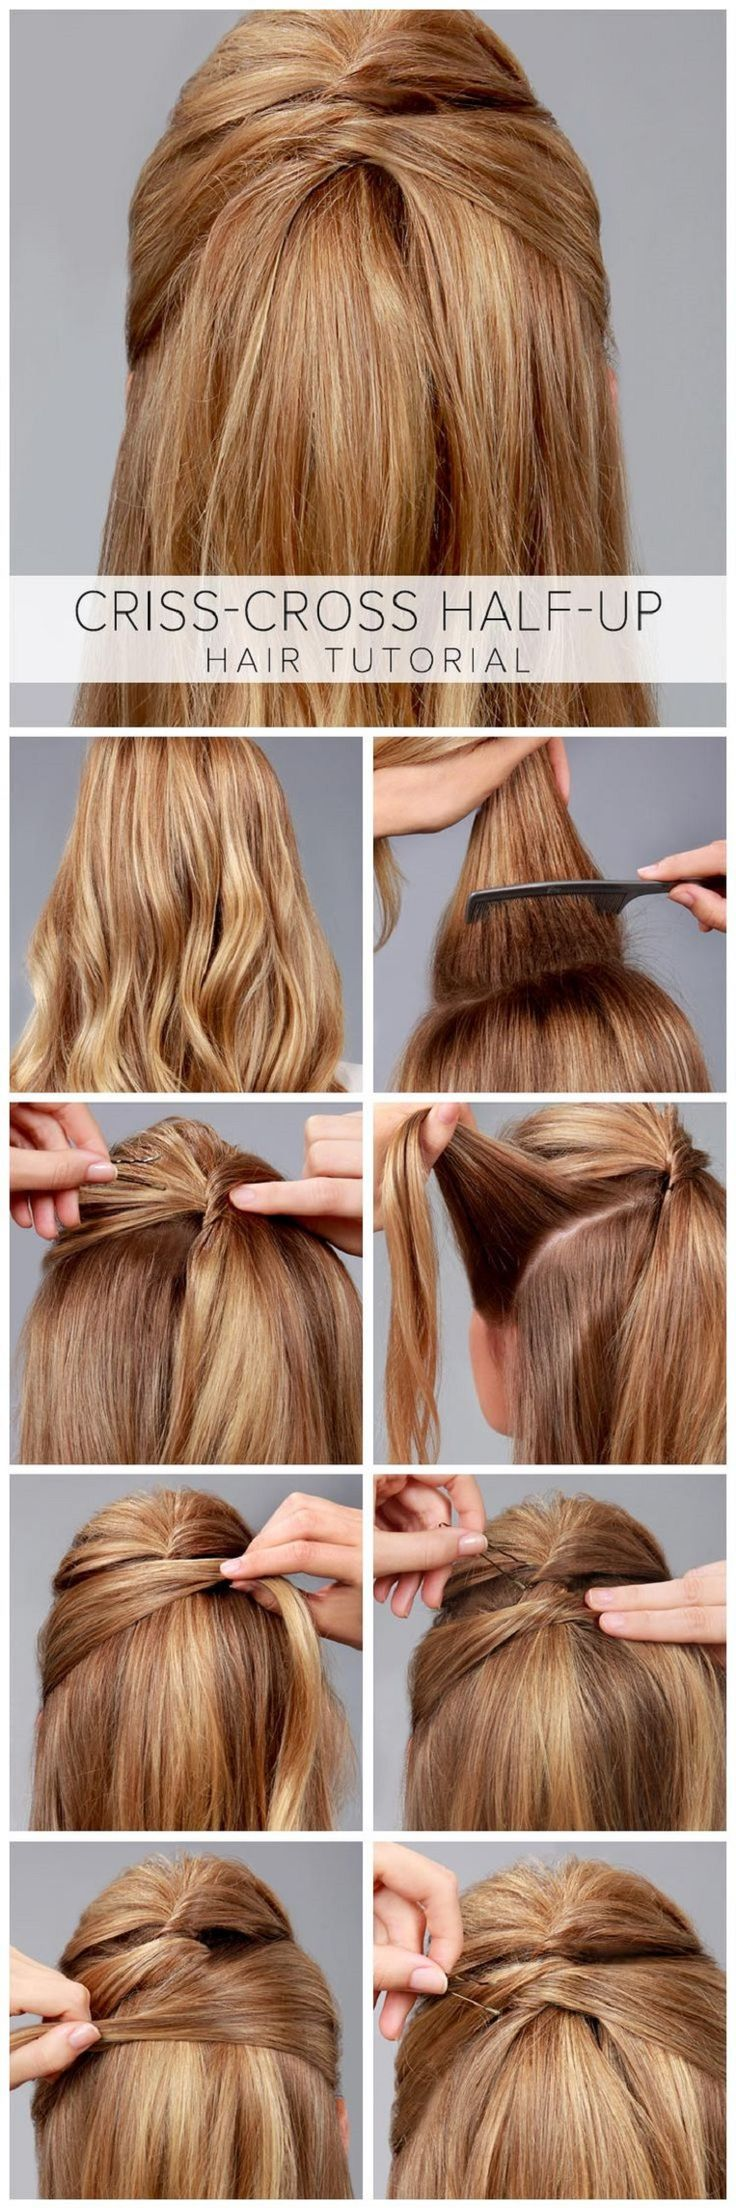 Criss-Cross 3Half-Up 3Hair Tutorial - 13 Easy #Tutorials to Look Polished and Professional at Work | GleamItUp